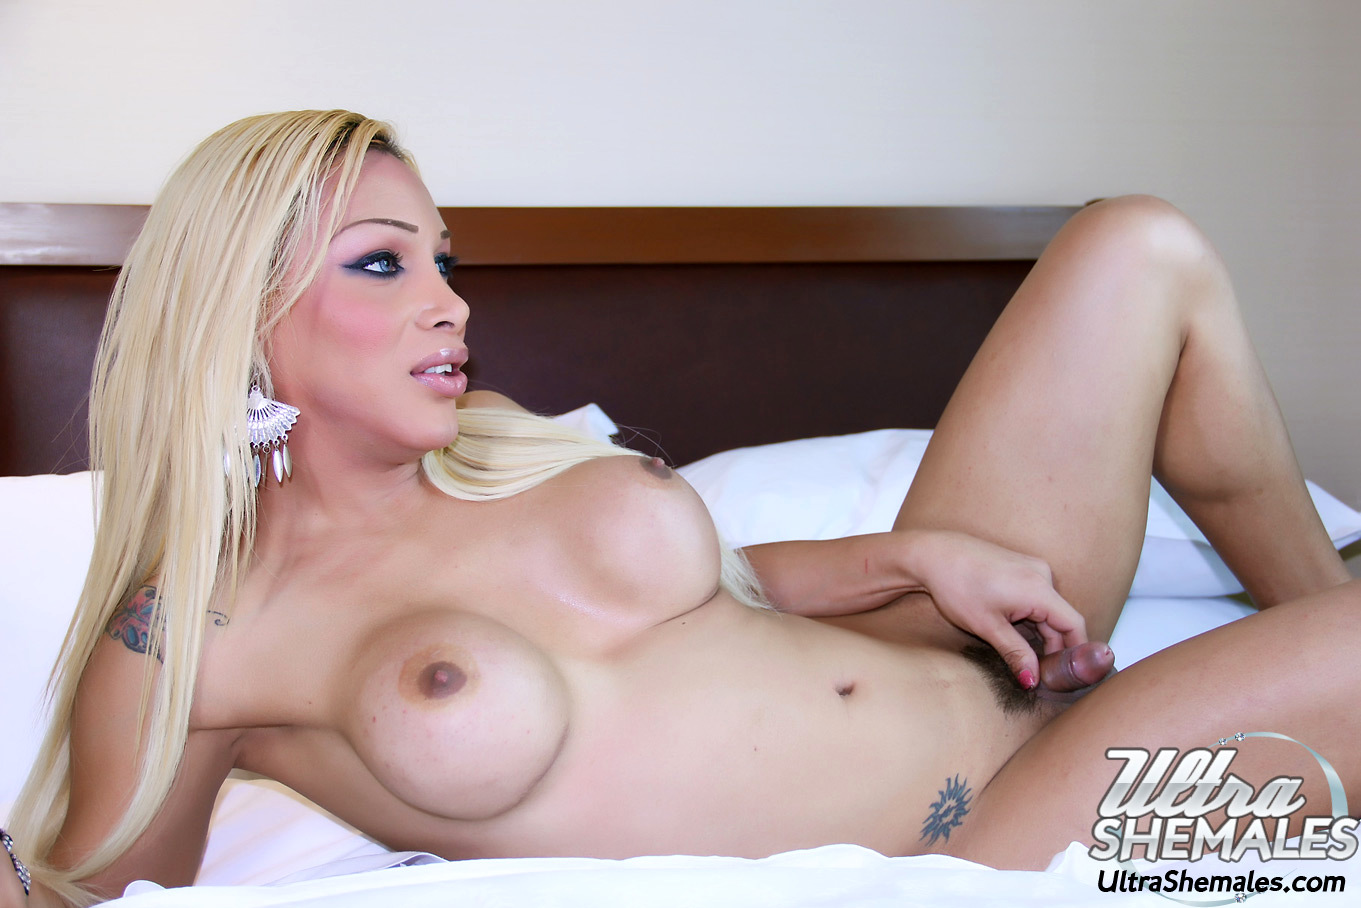 Kissable Blonde Tgirl Solanch With A Pretty Set Of Breasts Bending